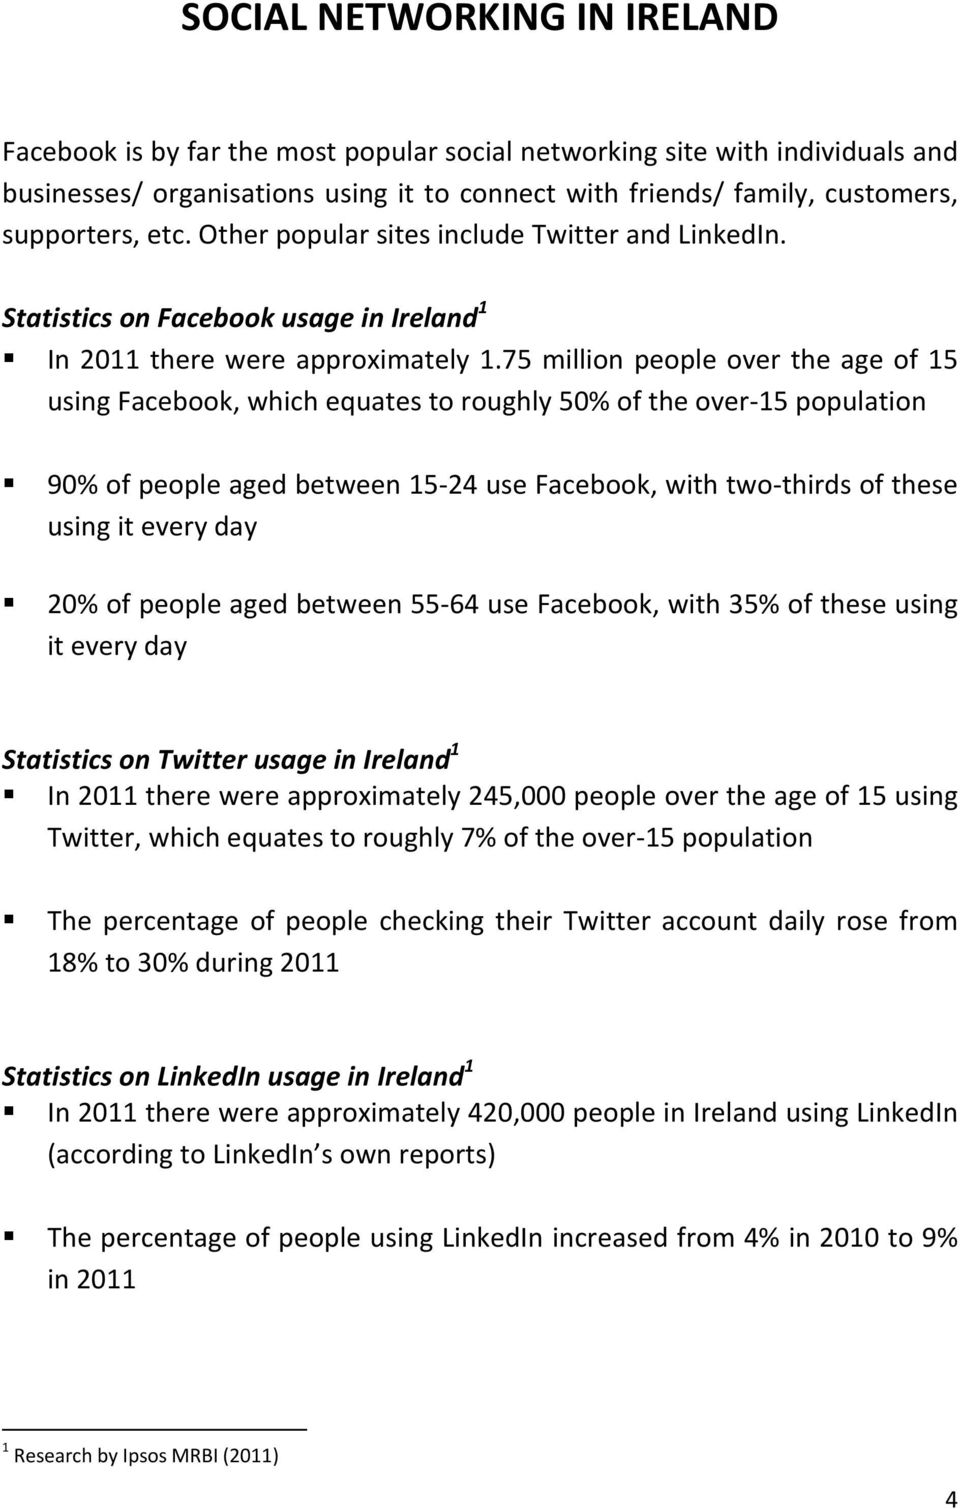 75 million people over the age of 15 using Facebook, which equates to roughly 50% of the over 15 population 90% of people aged between 15 24 use Facebook, with two thirds of these using it every day